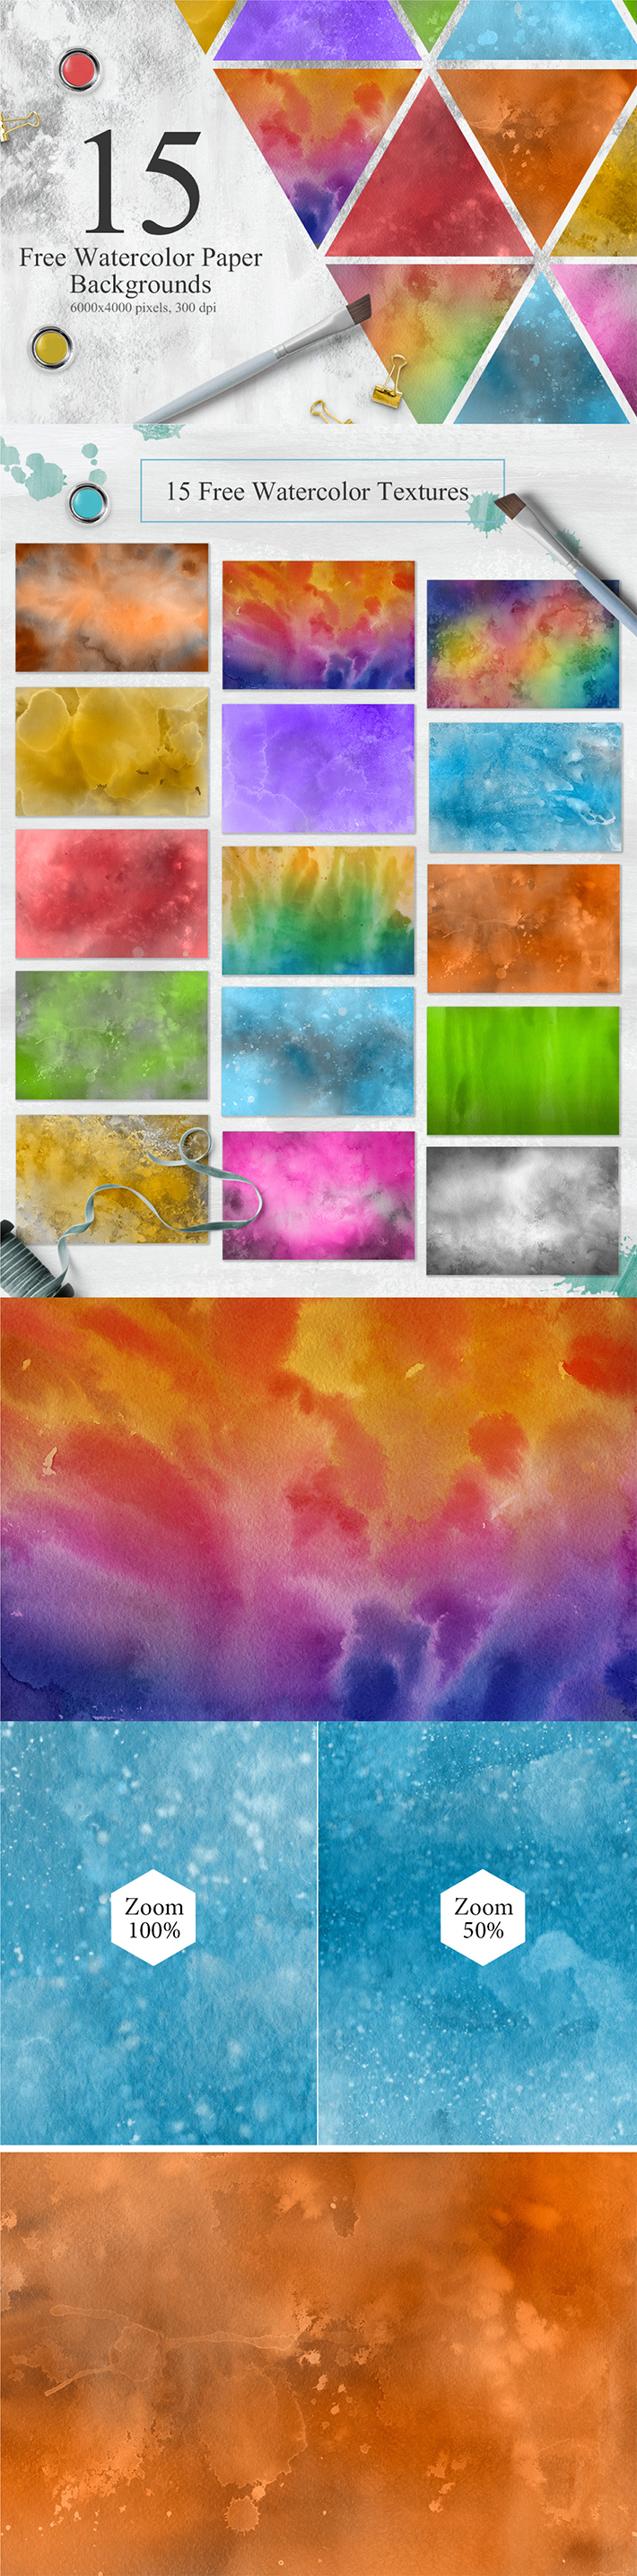 15 Free Watercolor Colorful Textures